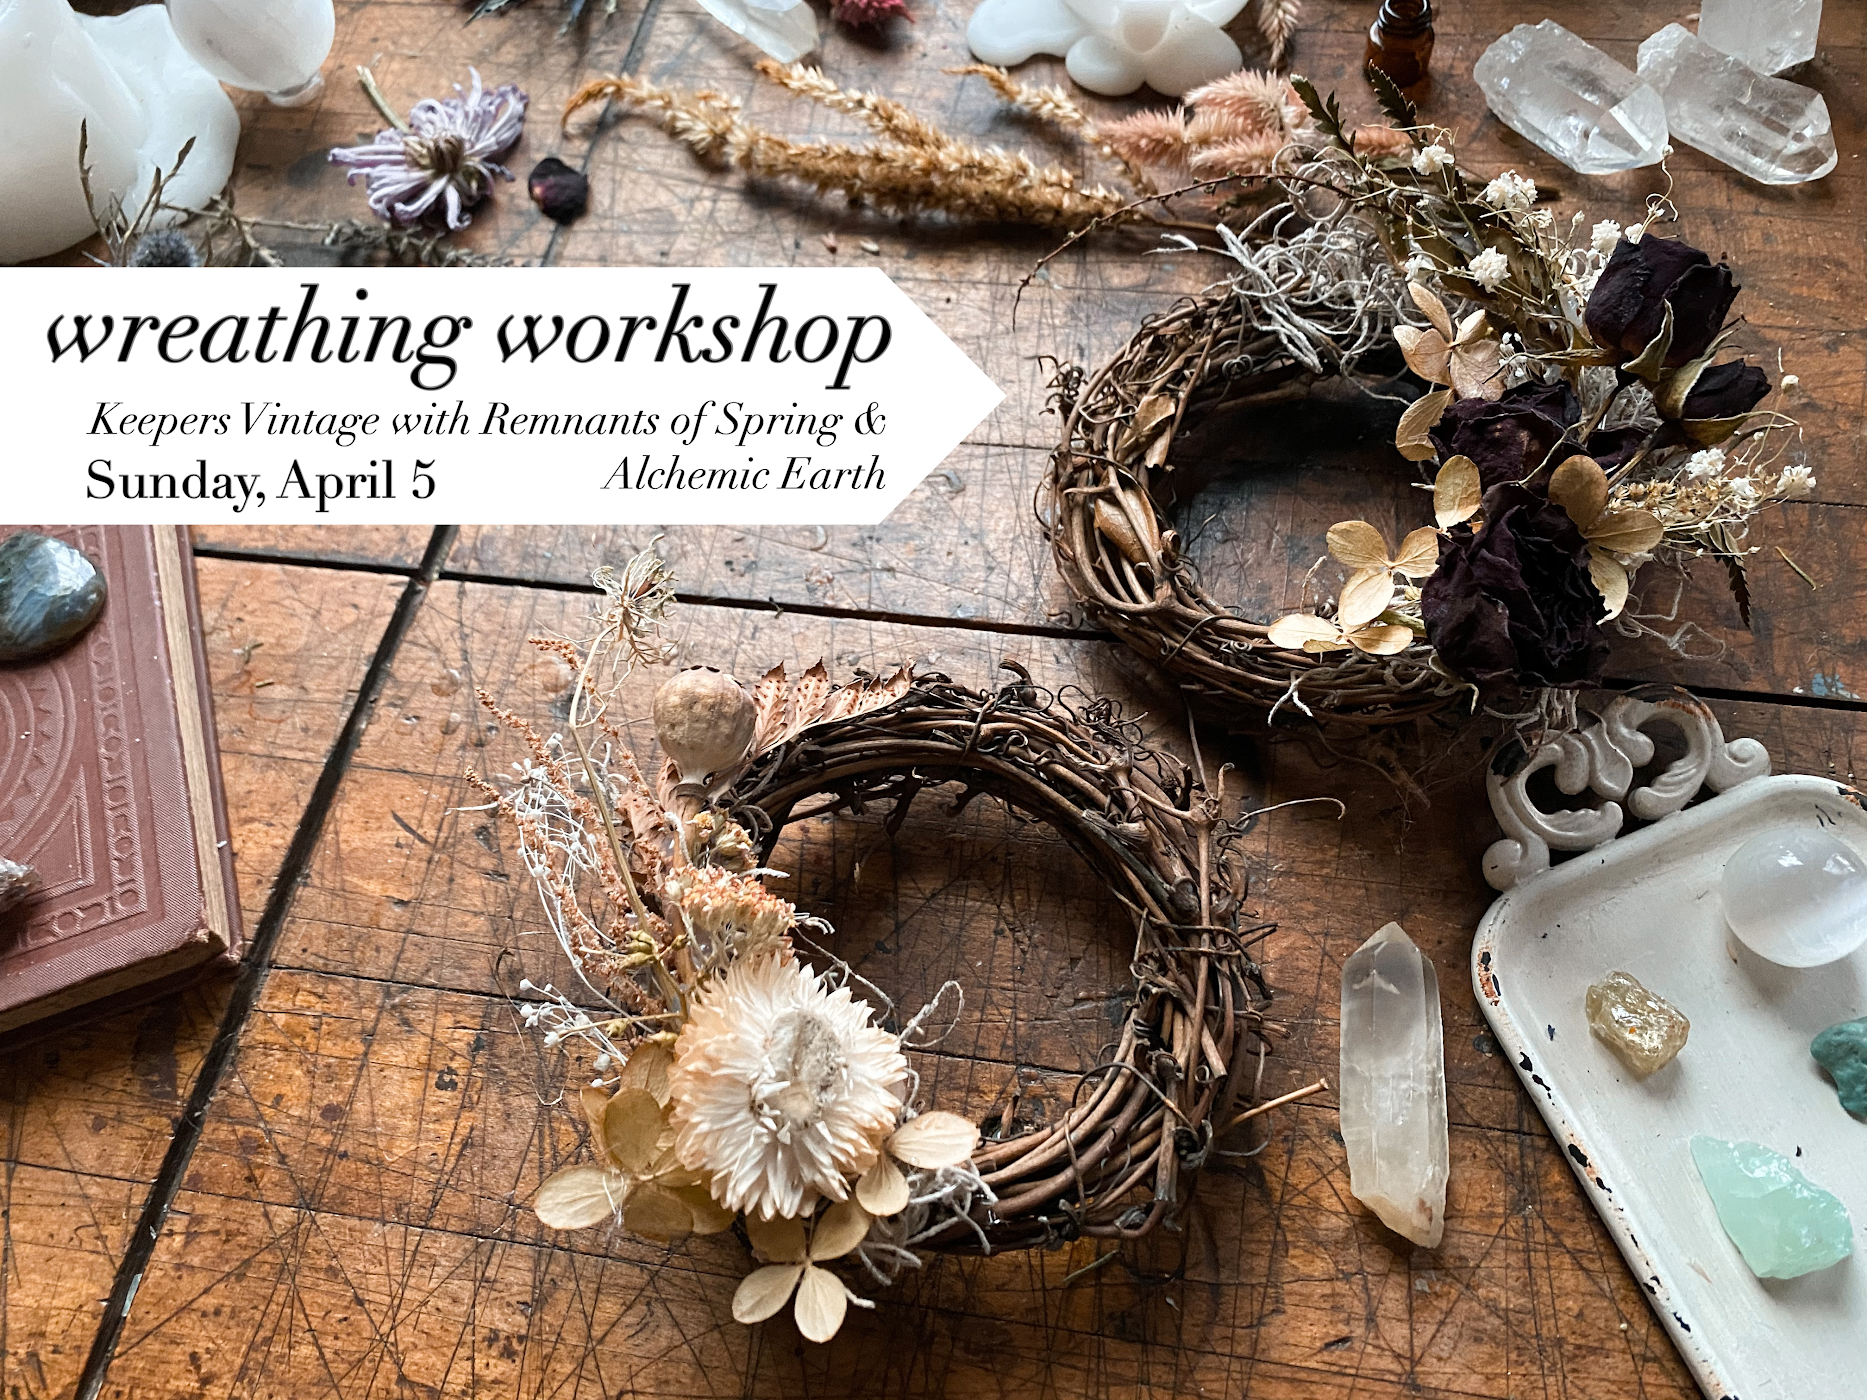 Wreathing Workshop with Remnants of Spring & Alchemic Earth